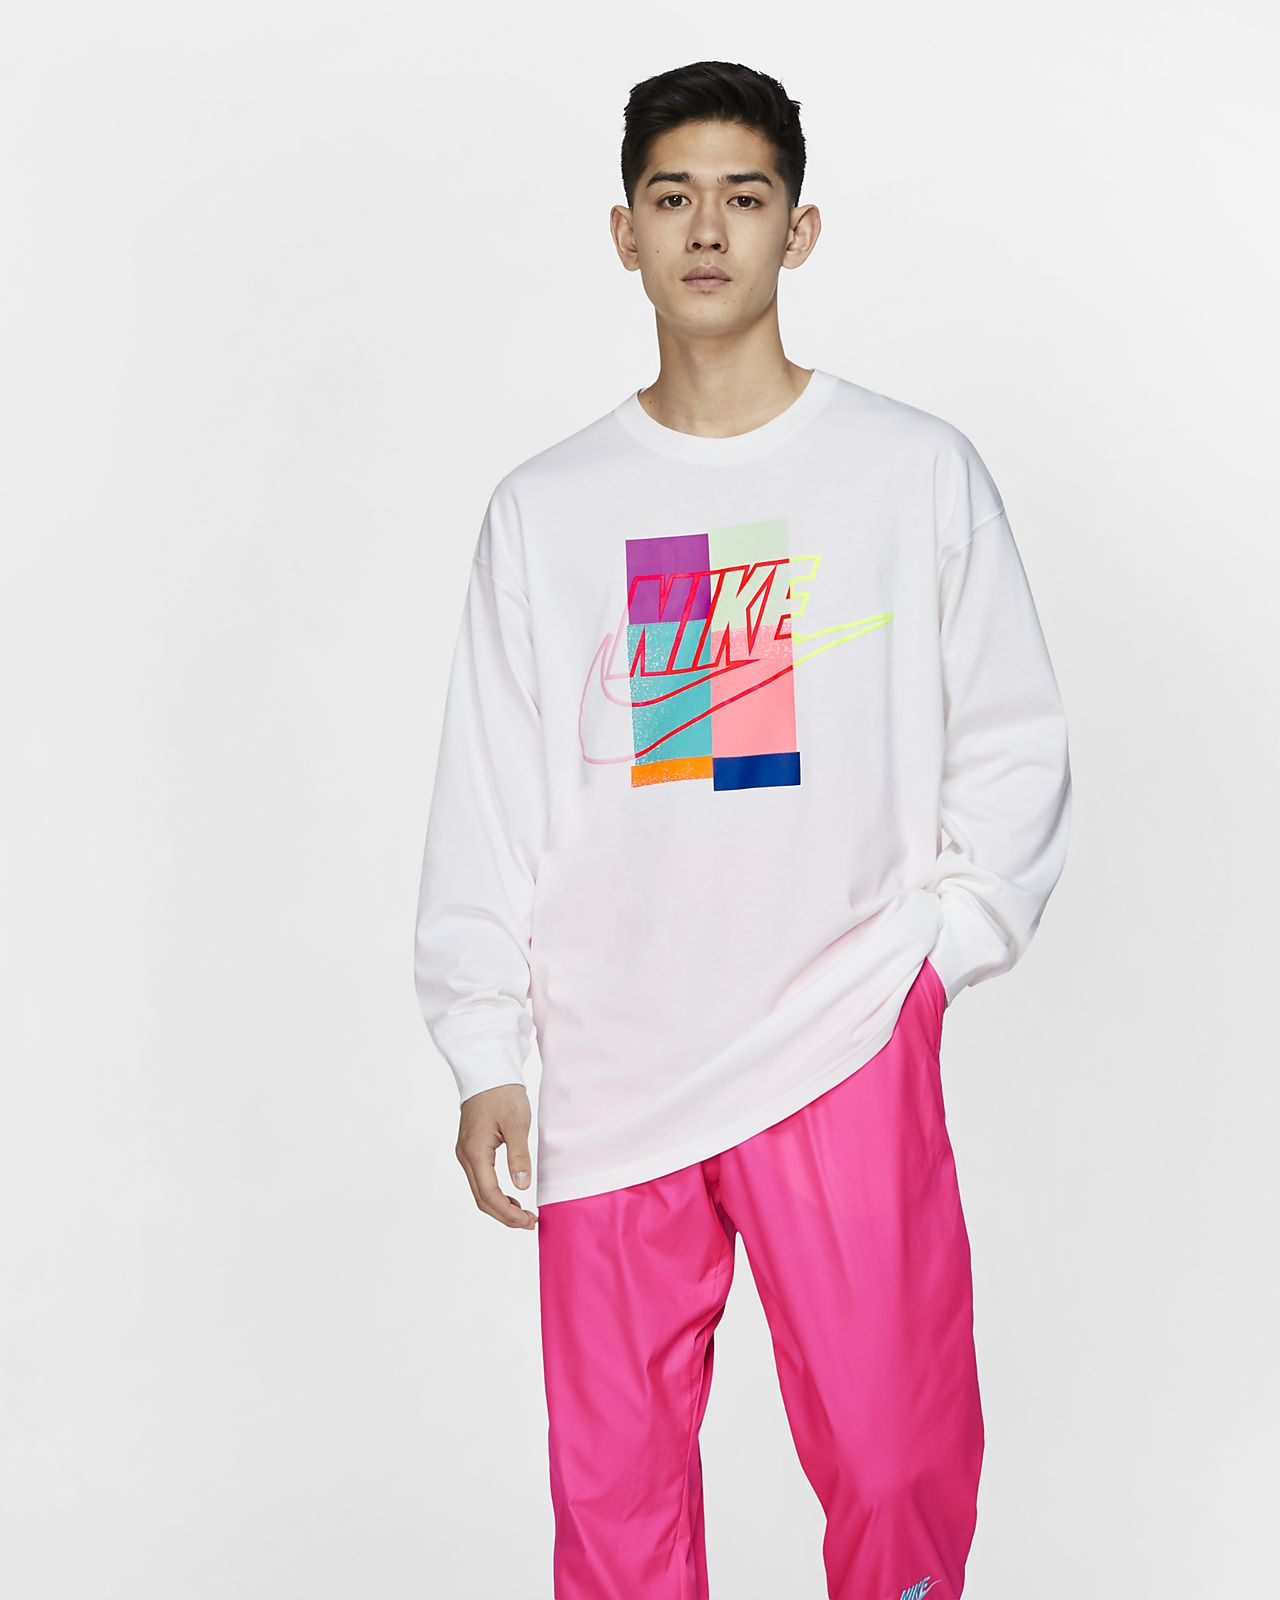 Nike x atmos Men's Long-Sleeve T-Shirt